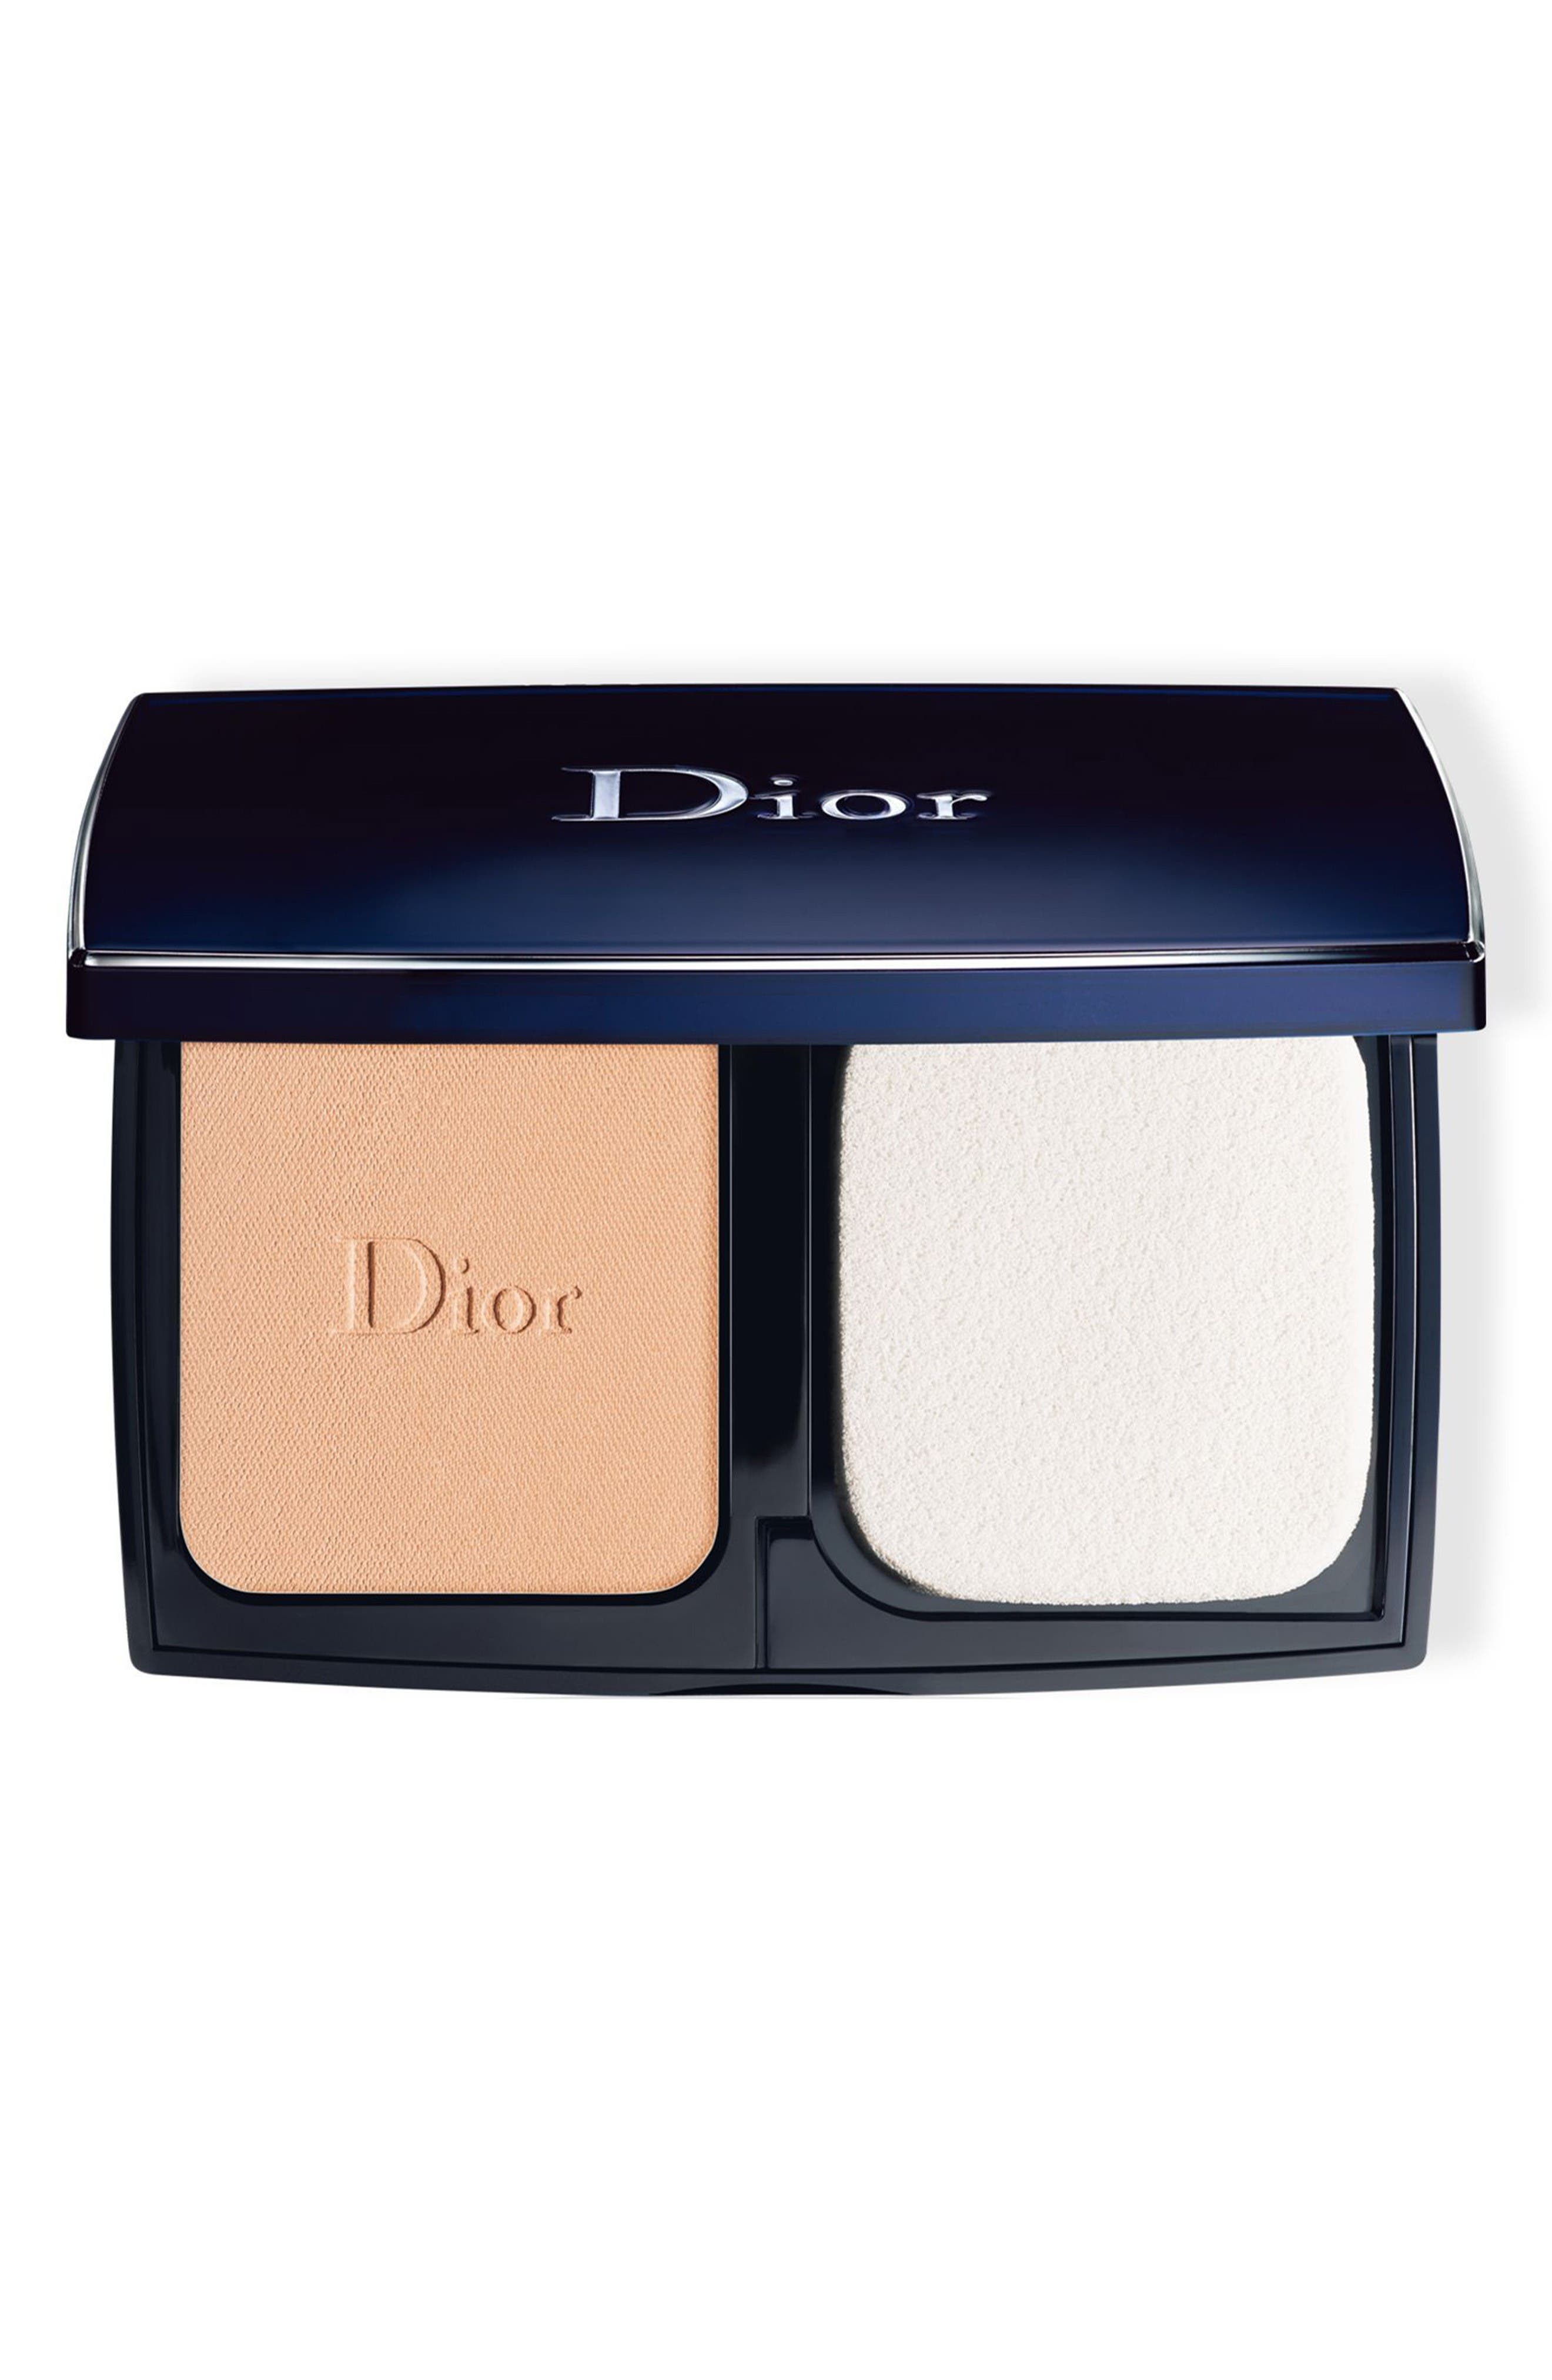 Diorskin Forever Flawless Perfection Fusion Wear Compact Foundation SPF 25,                             Main thumbnail 1, color,                             022 Cameo